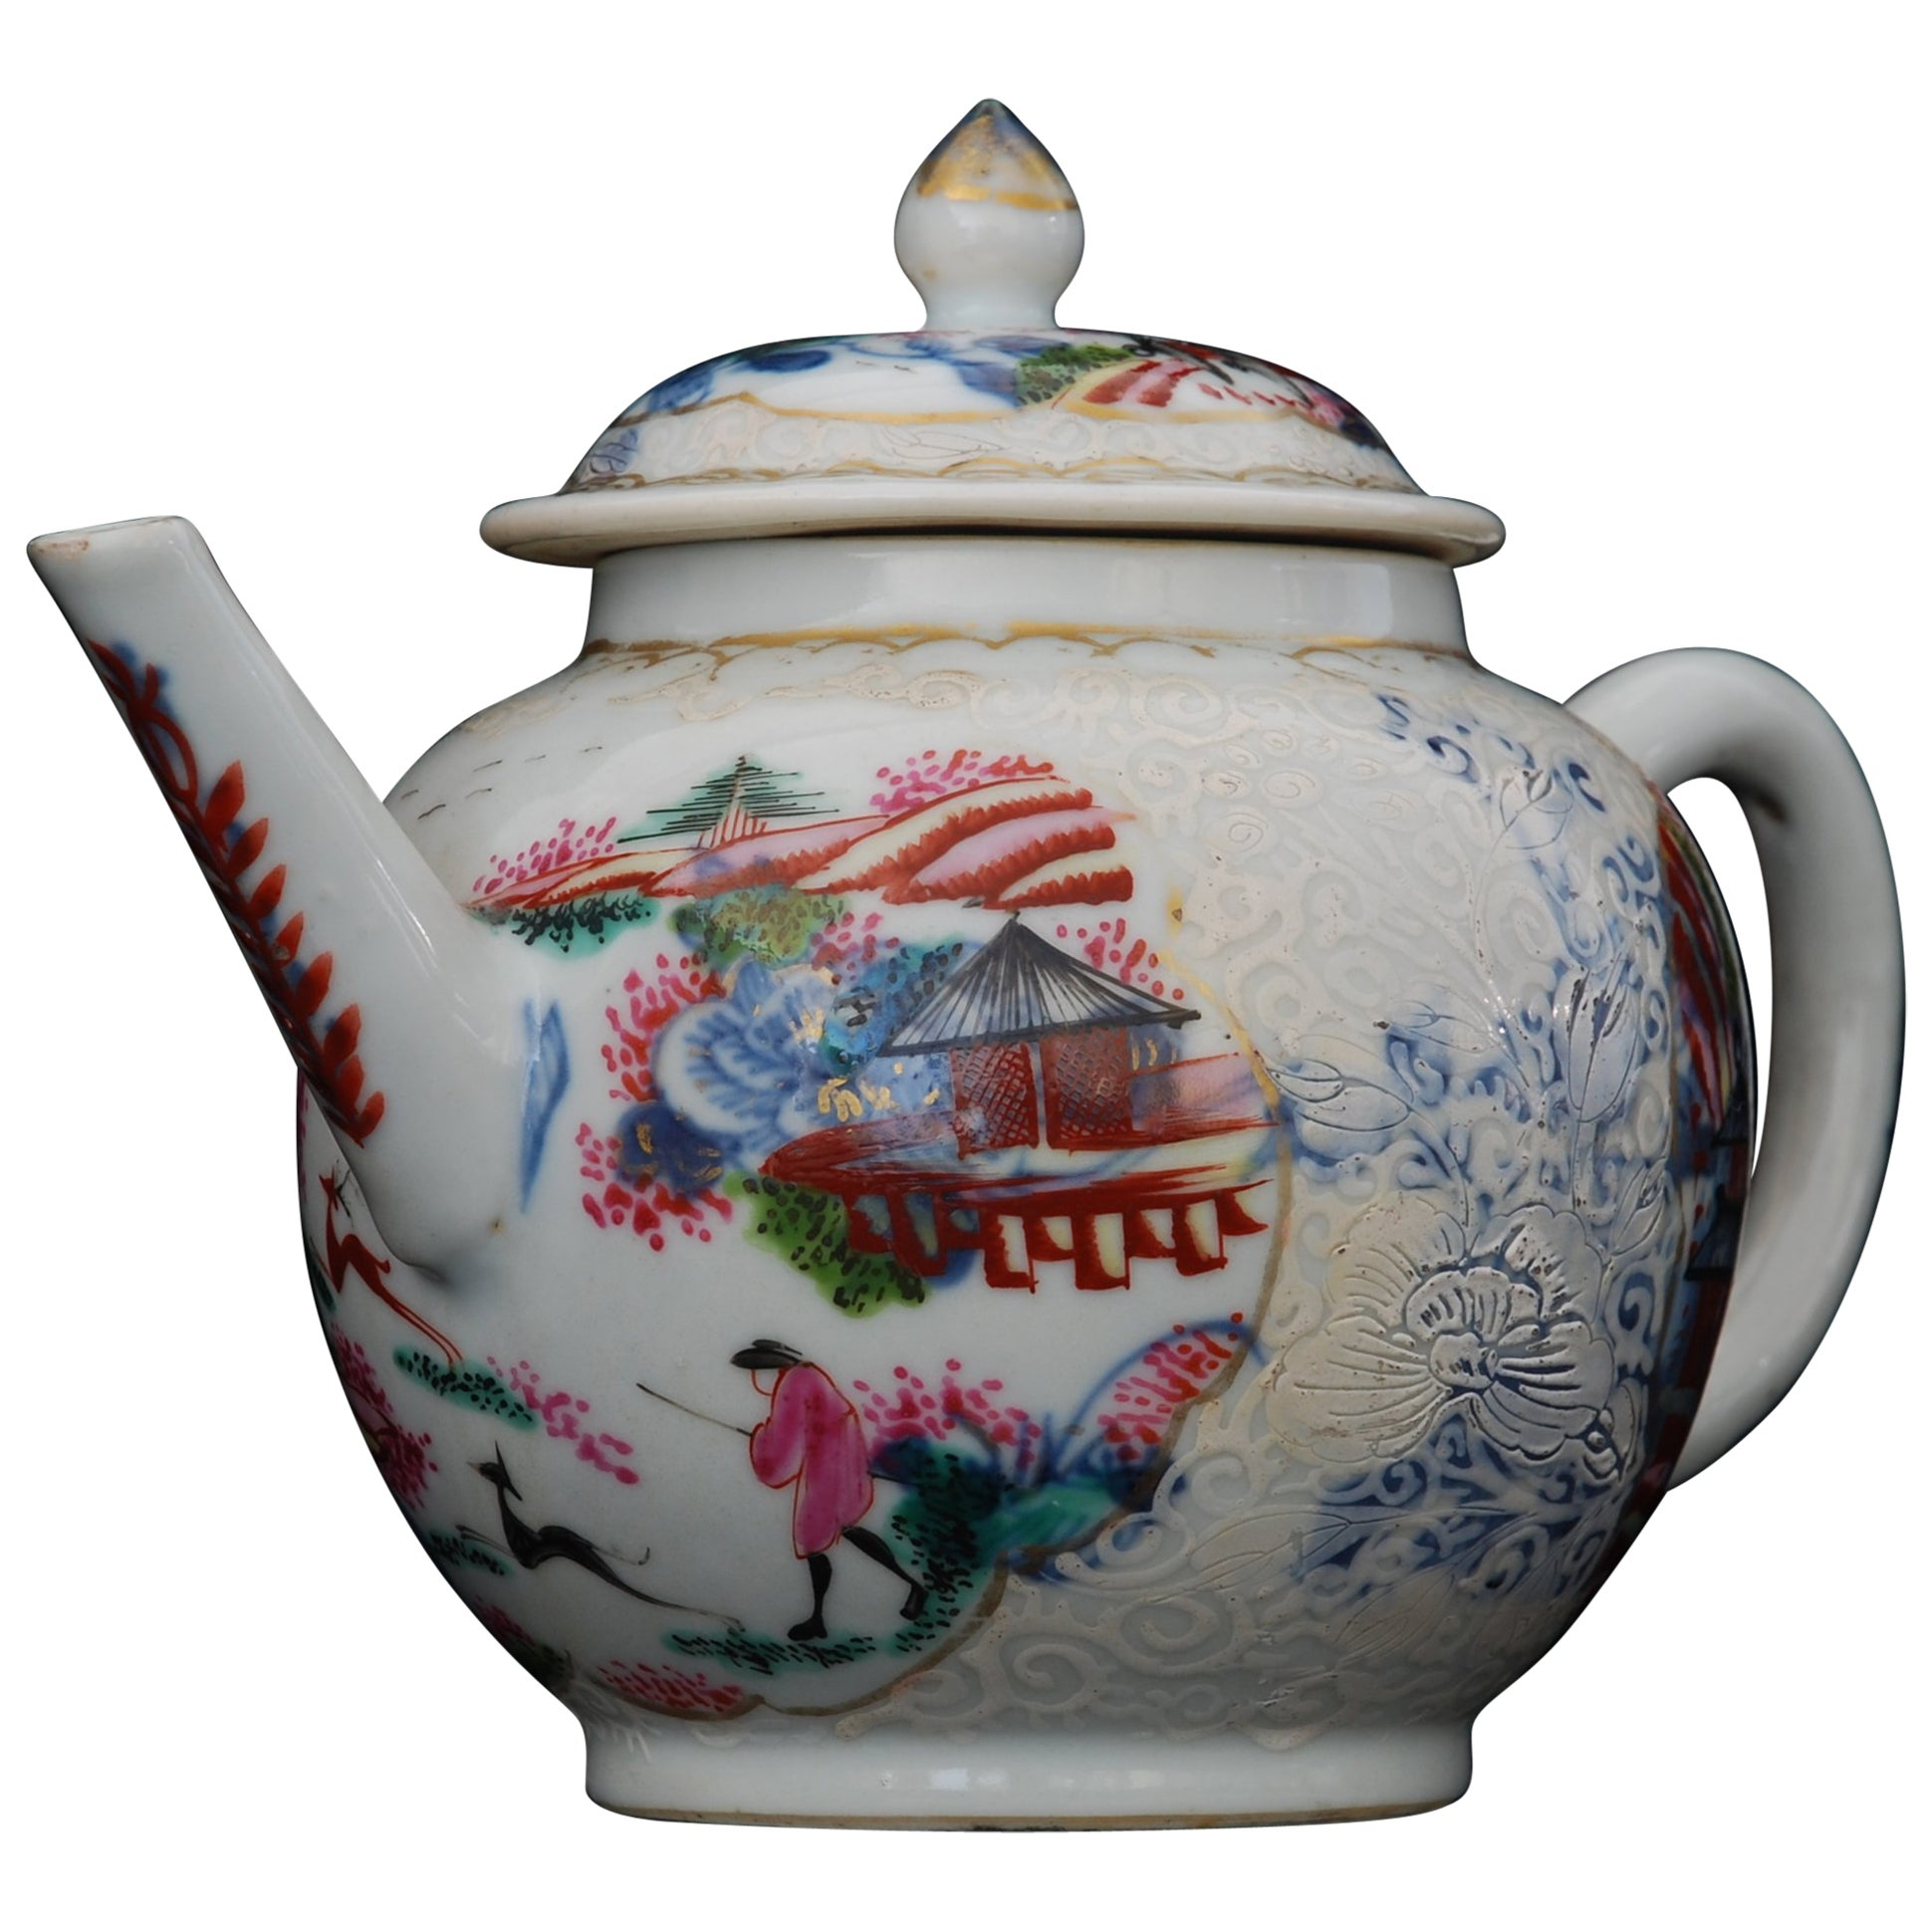 Teapot, Stag Hunt Pattern, China, circa 1740, Decorated in London by Giles